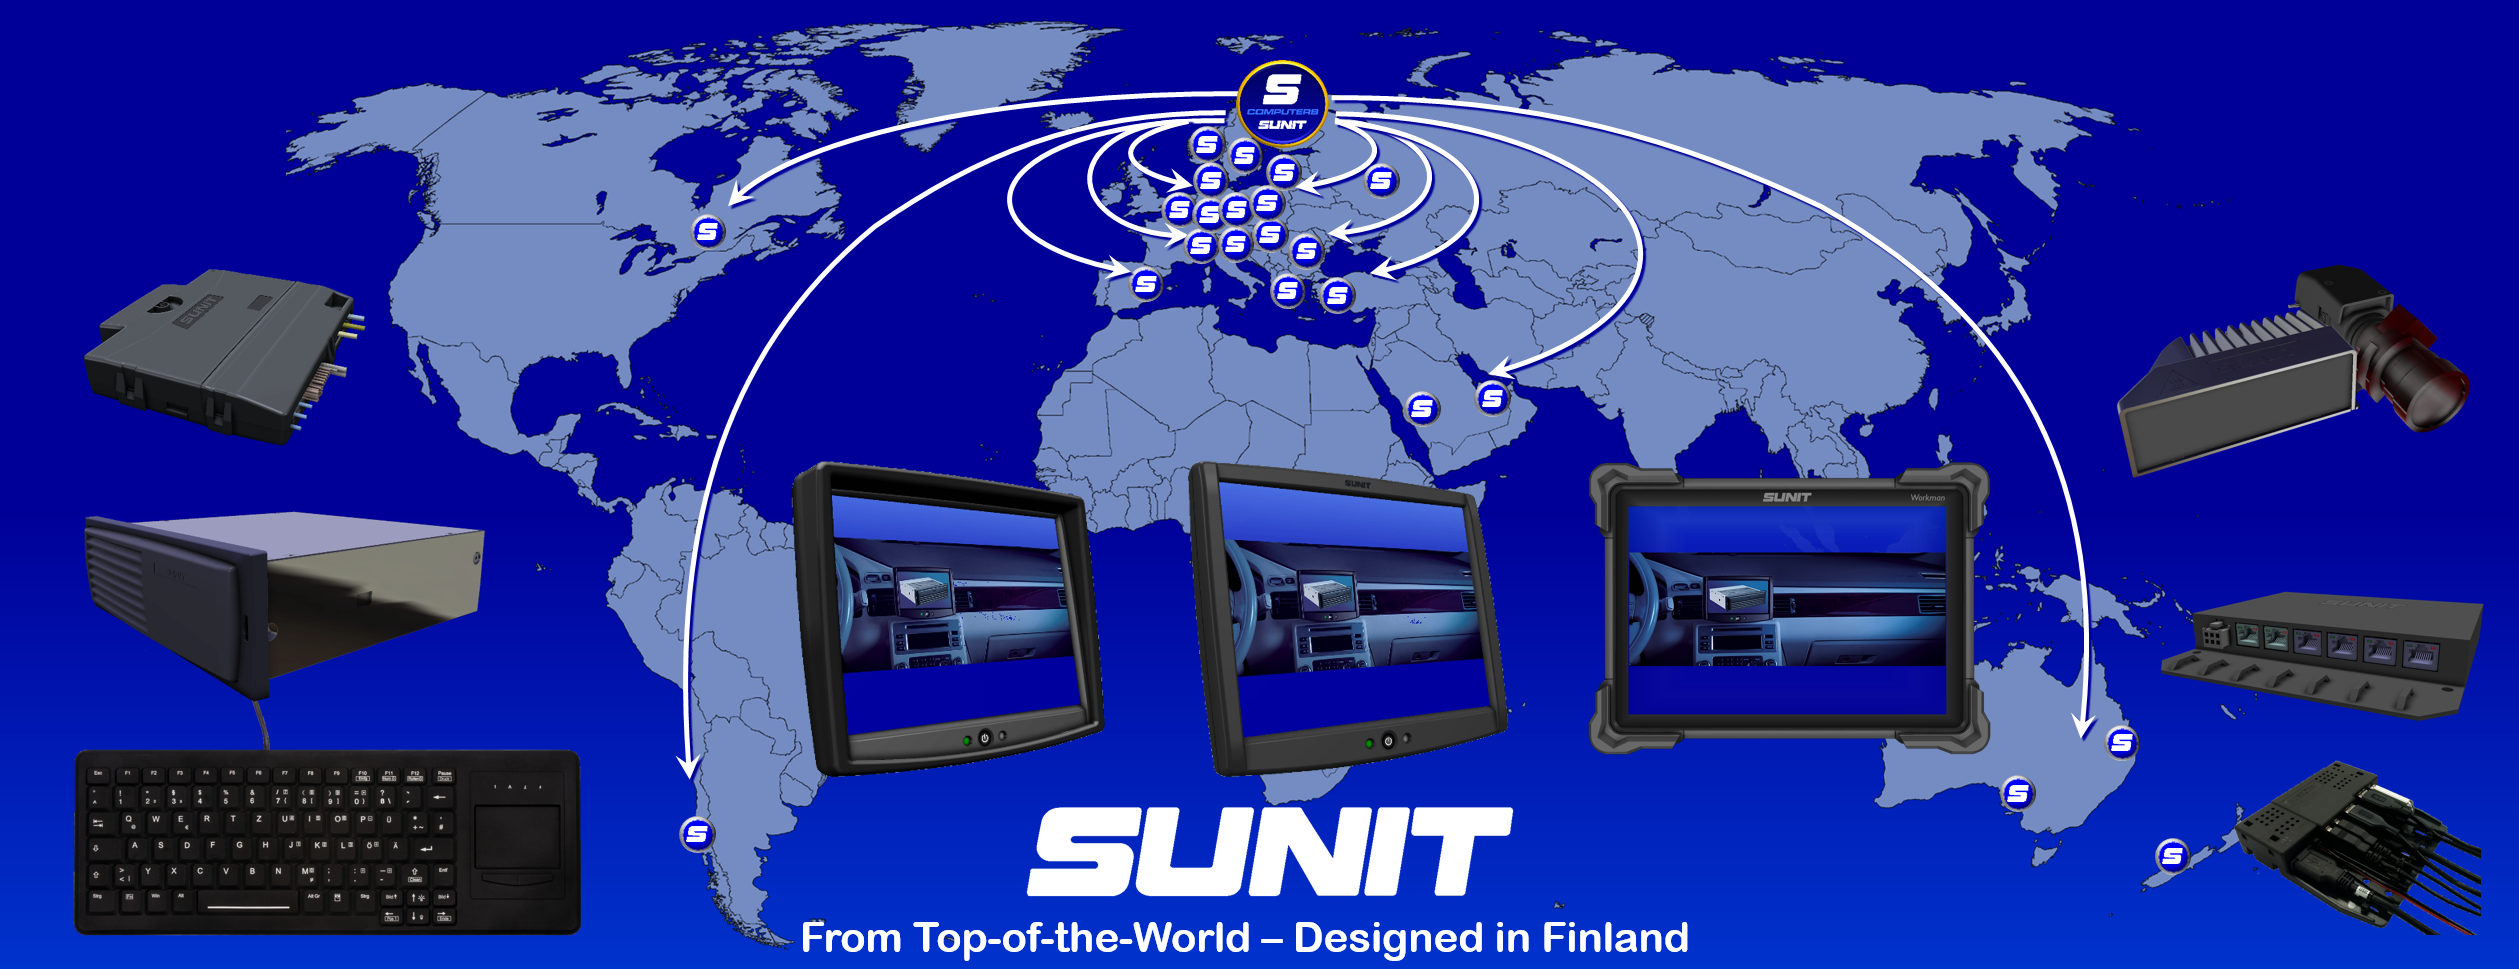 SUNIT Industry Computers from Top of the World